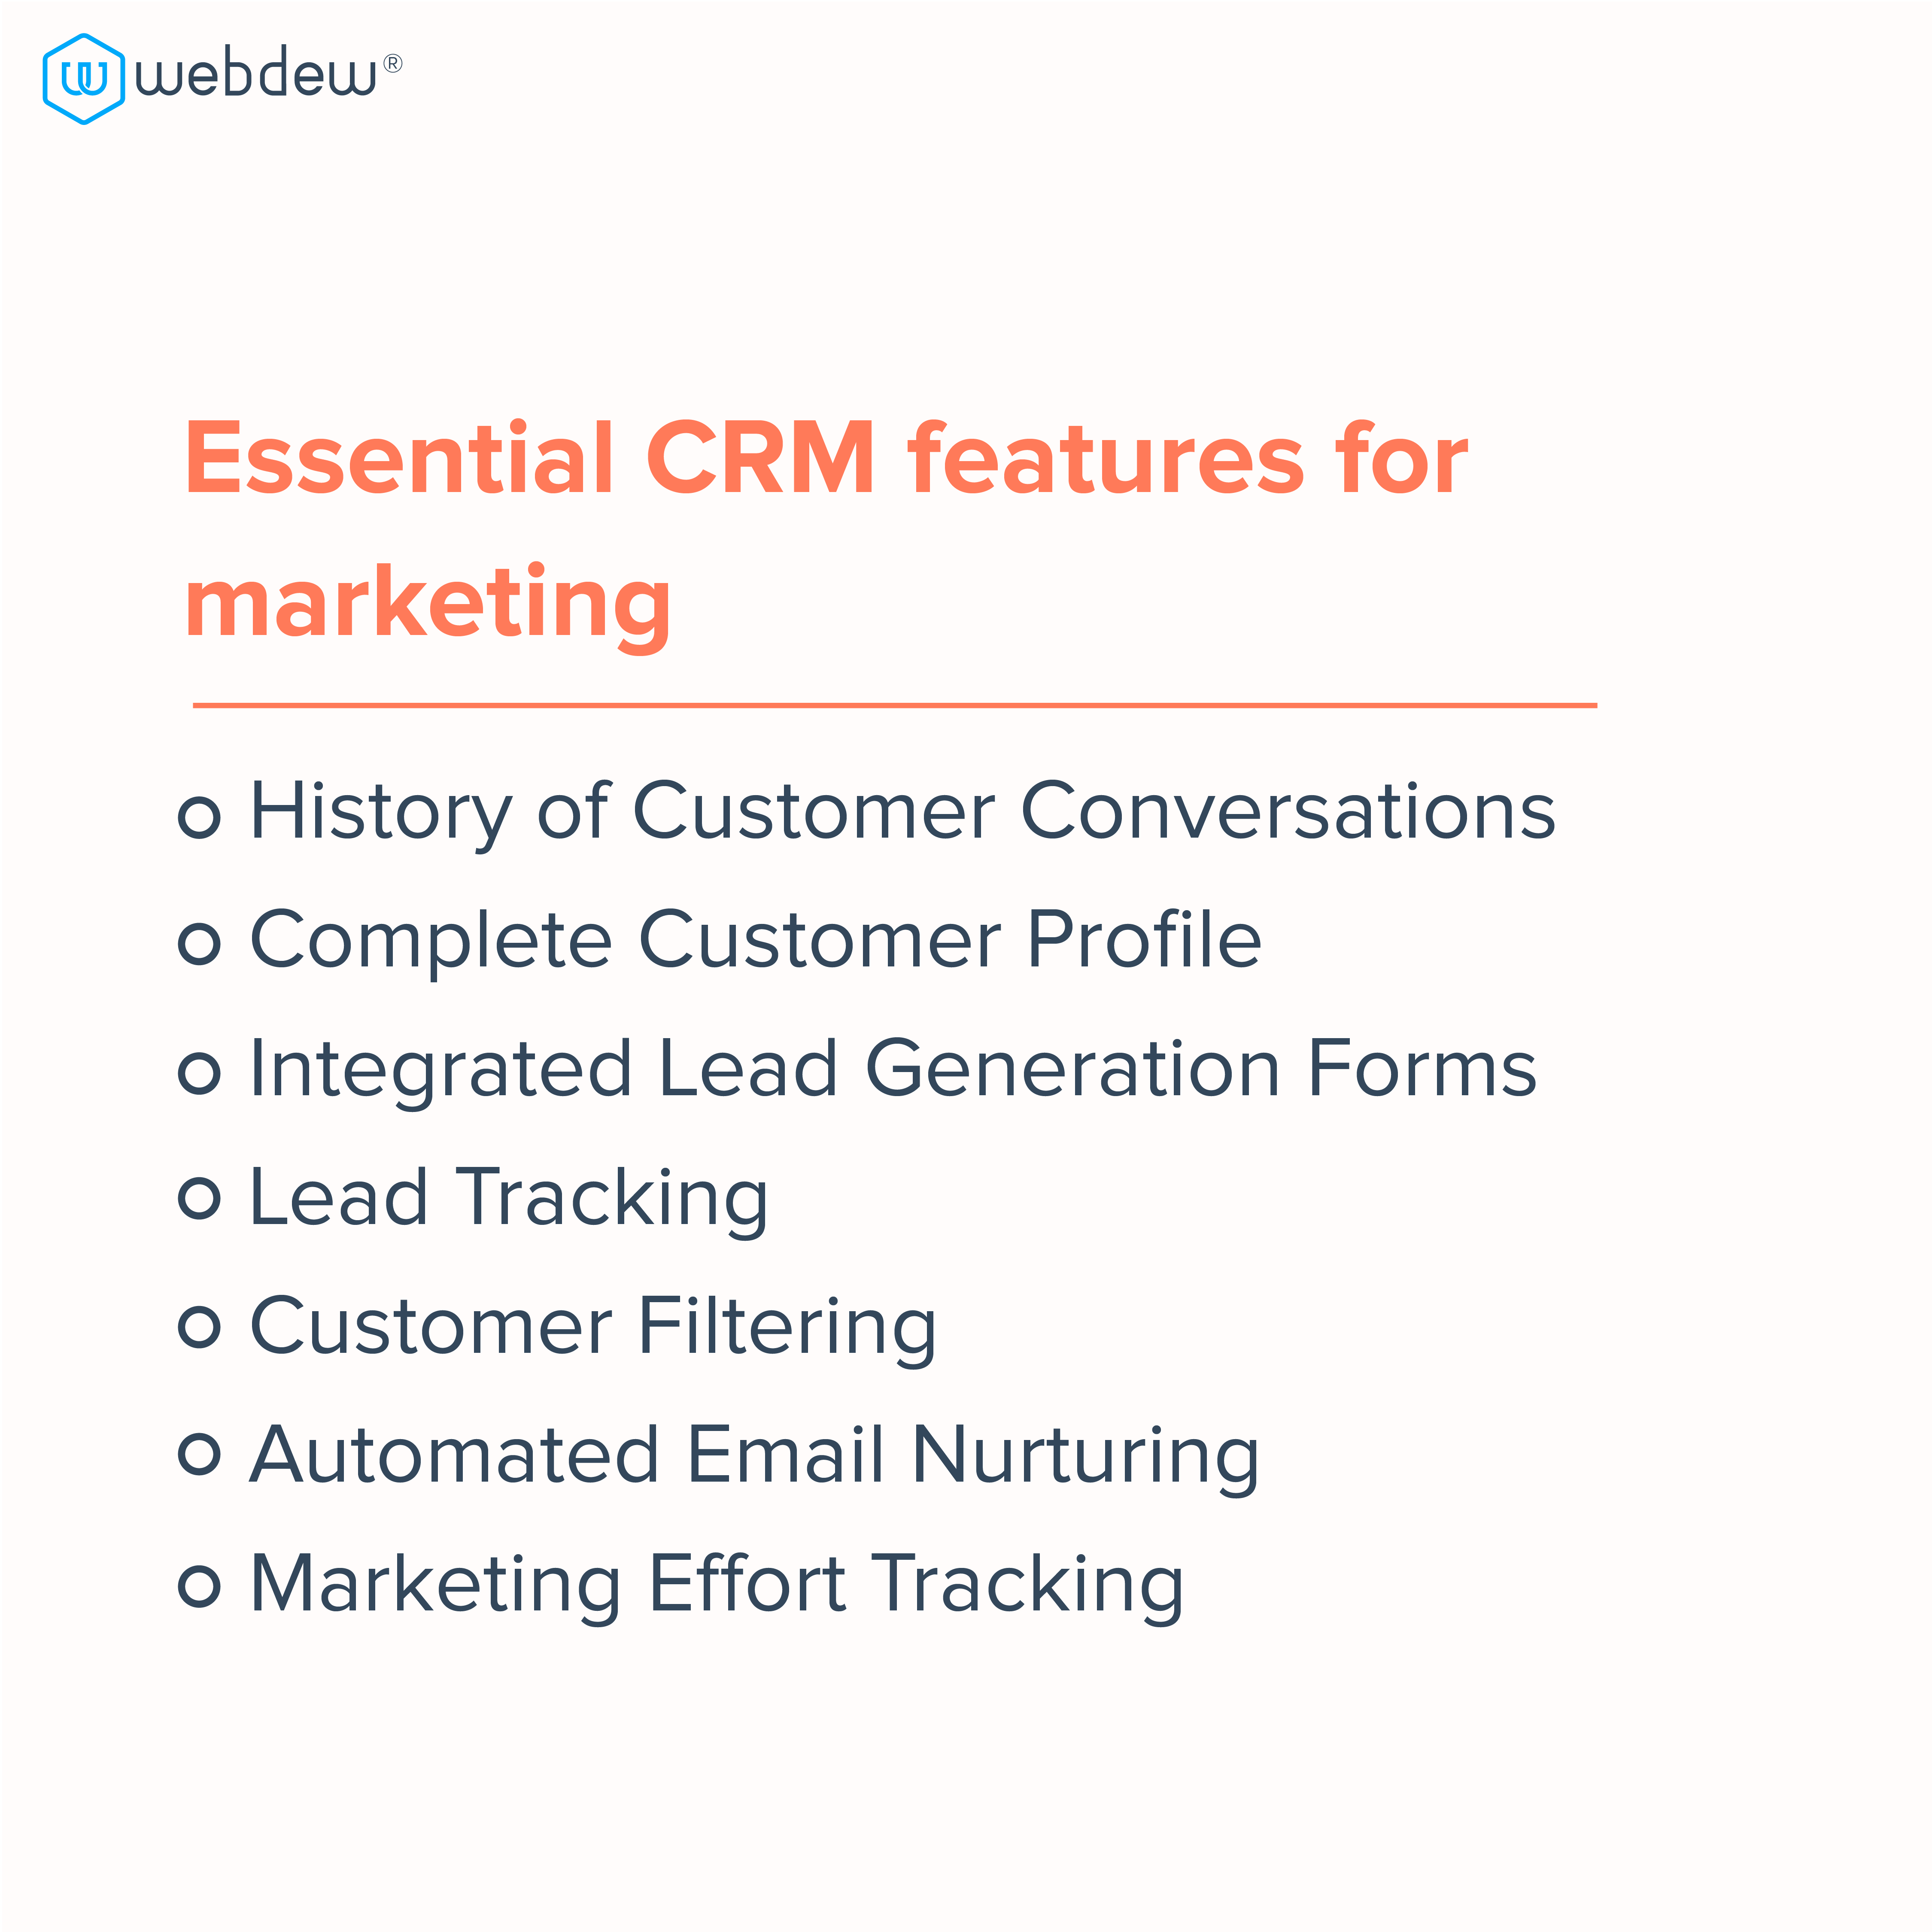 4-7 essential CRM features marketers should look for 2021-05